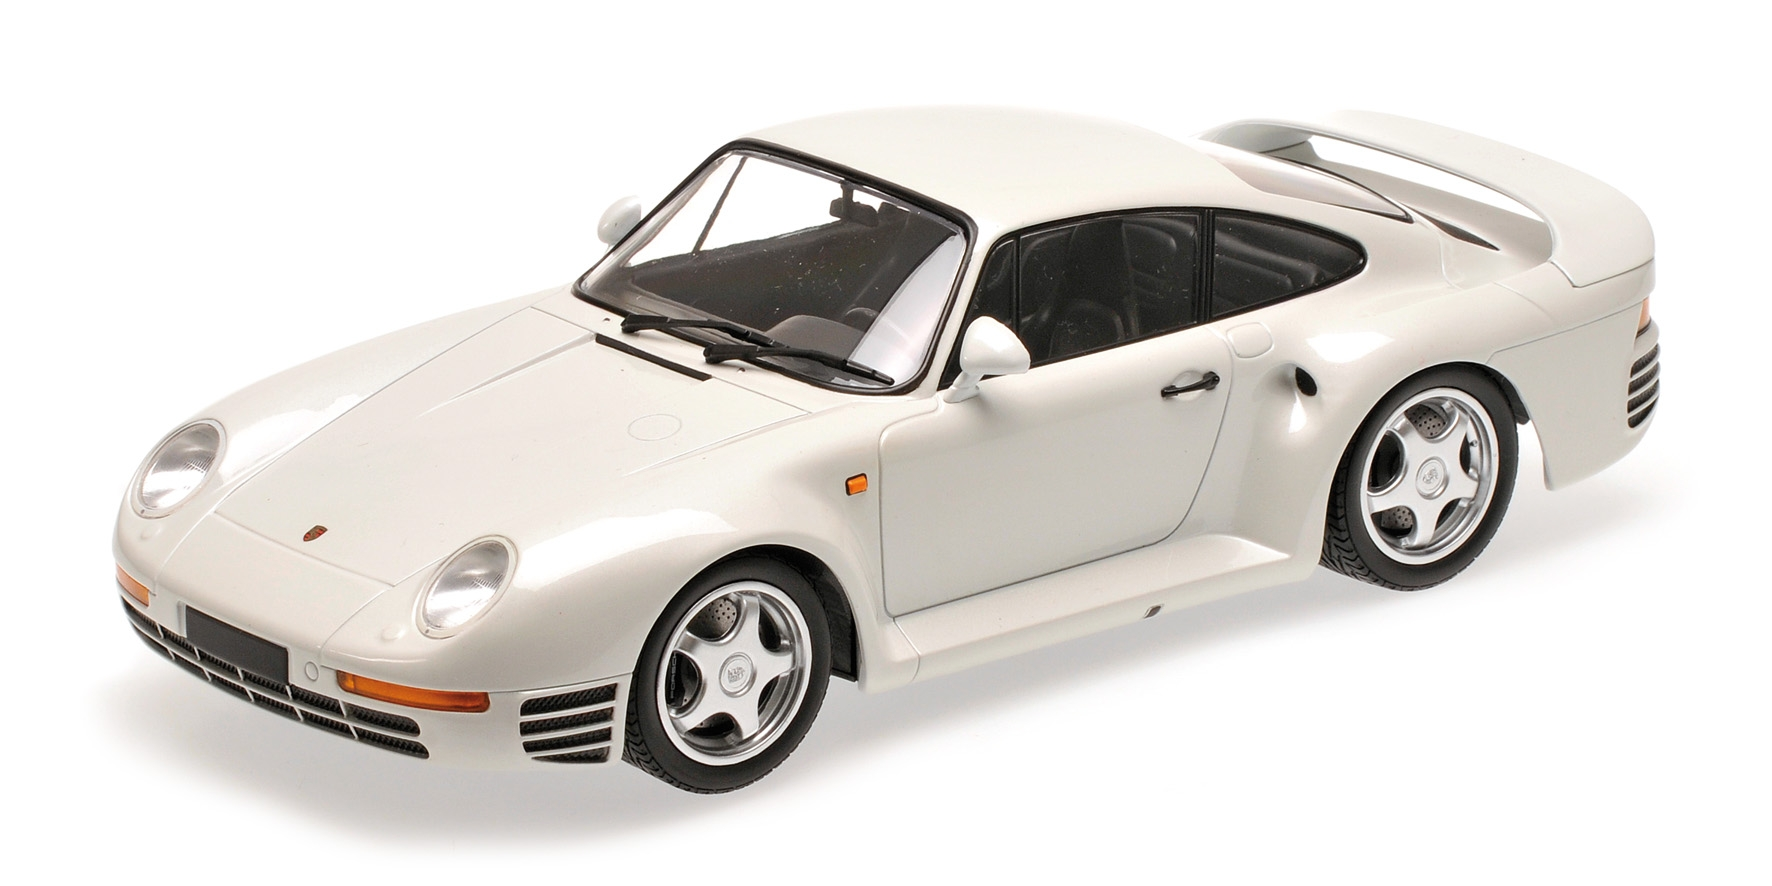 PORSCHE 959 155066206 WHITE METALLIC 1987 Minichamps 155066206 959 9251ea